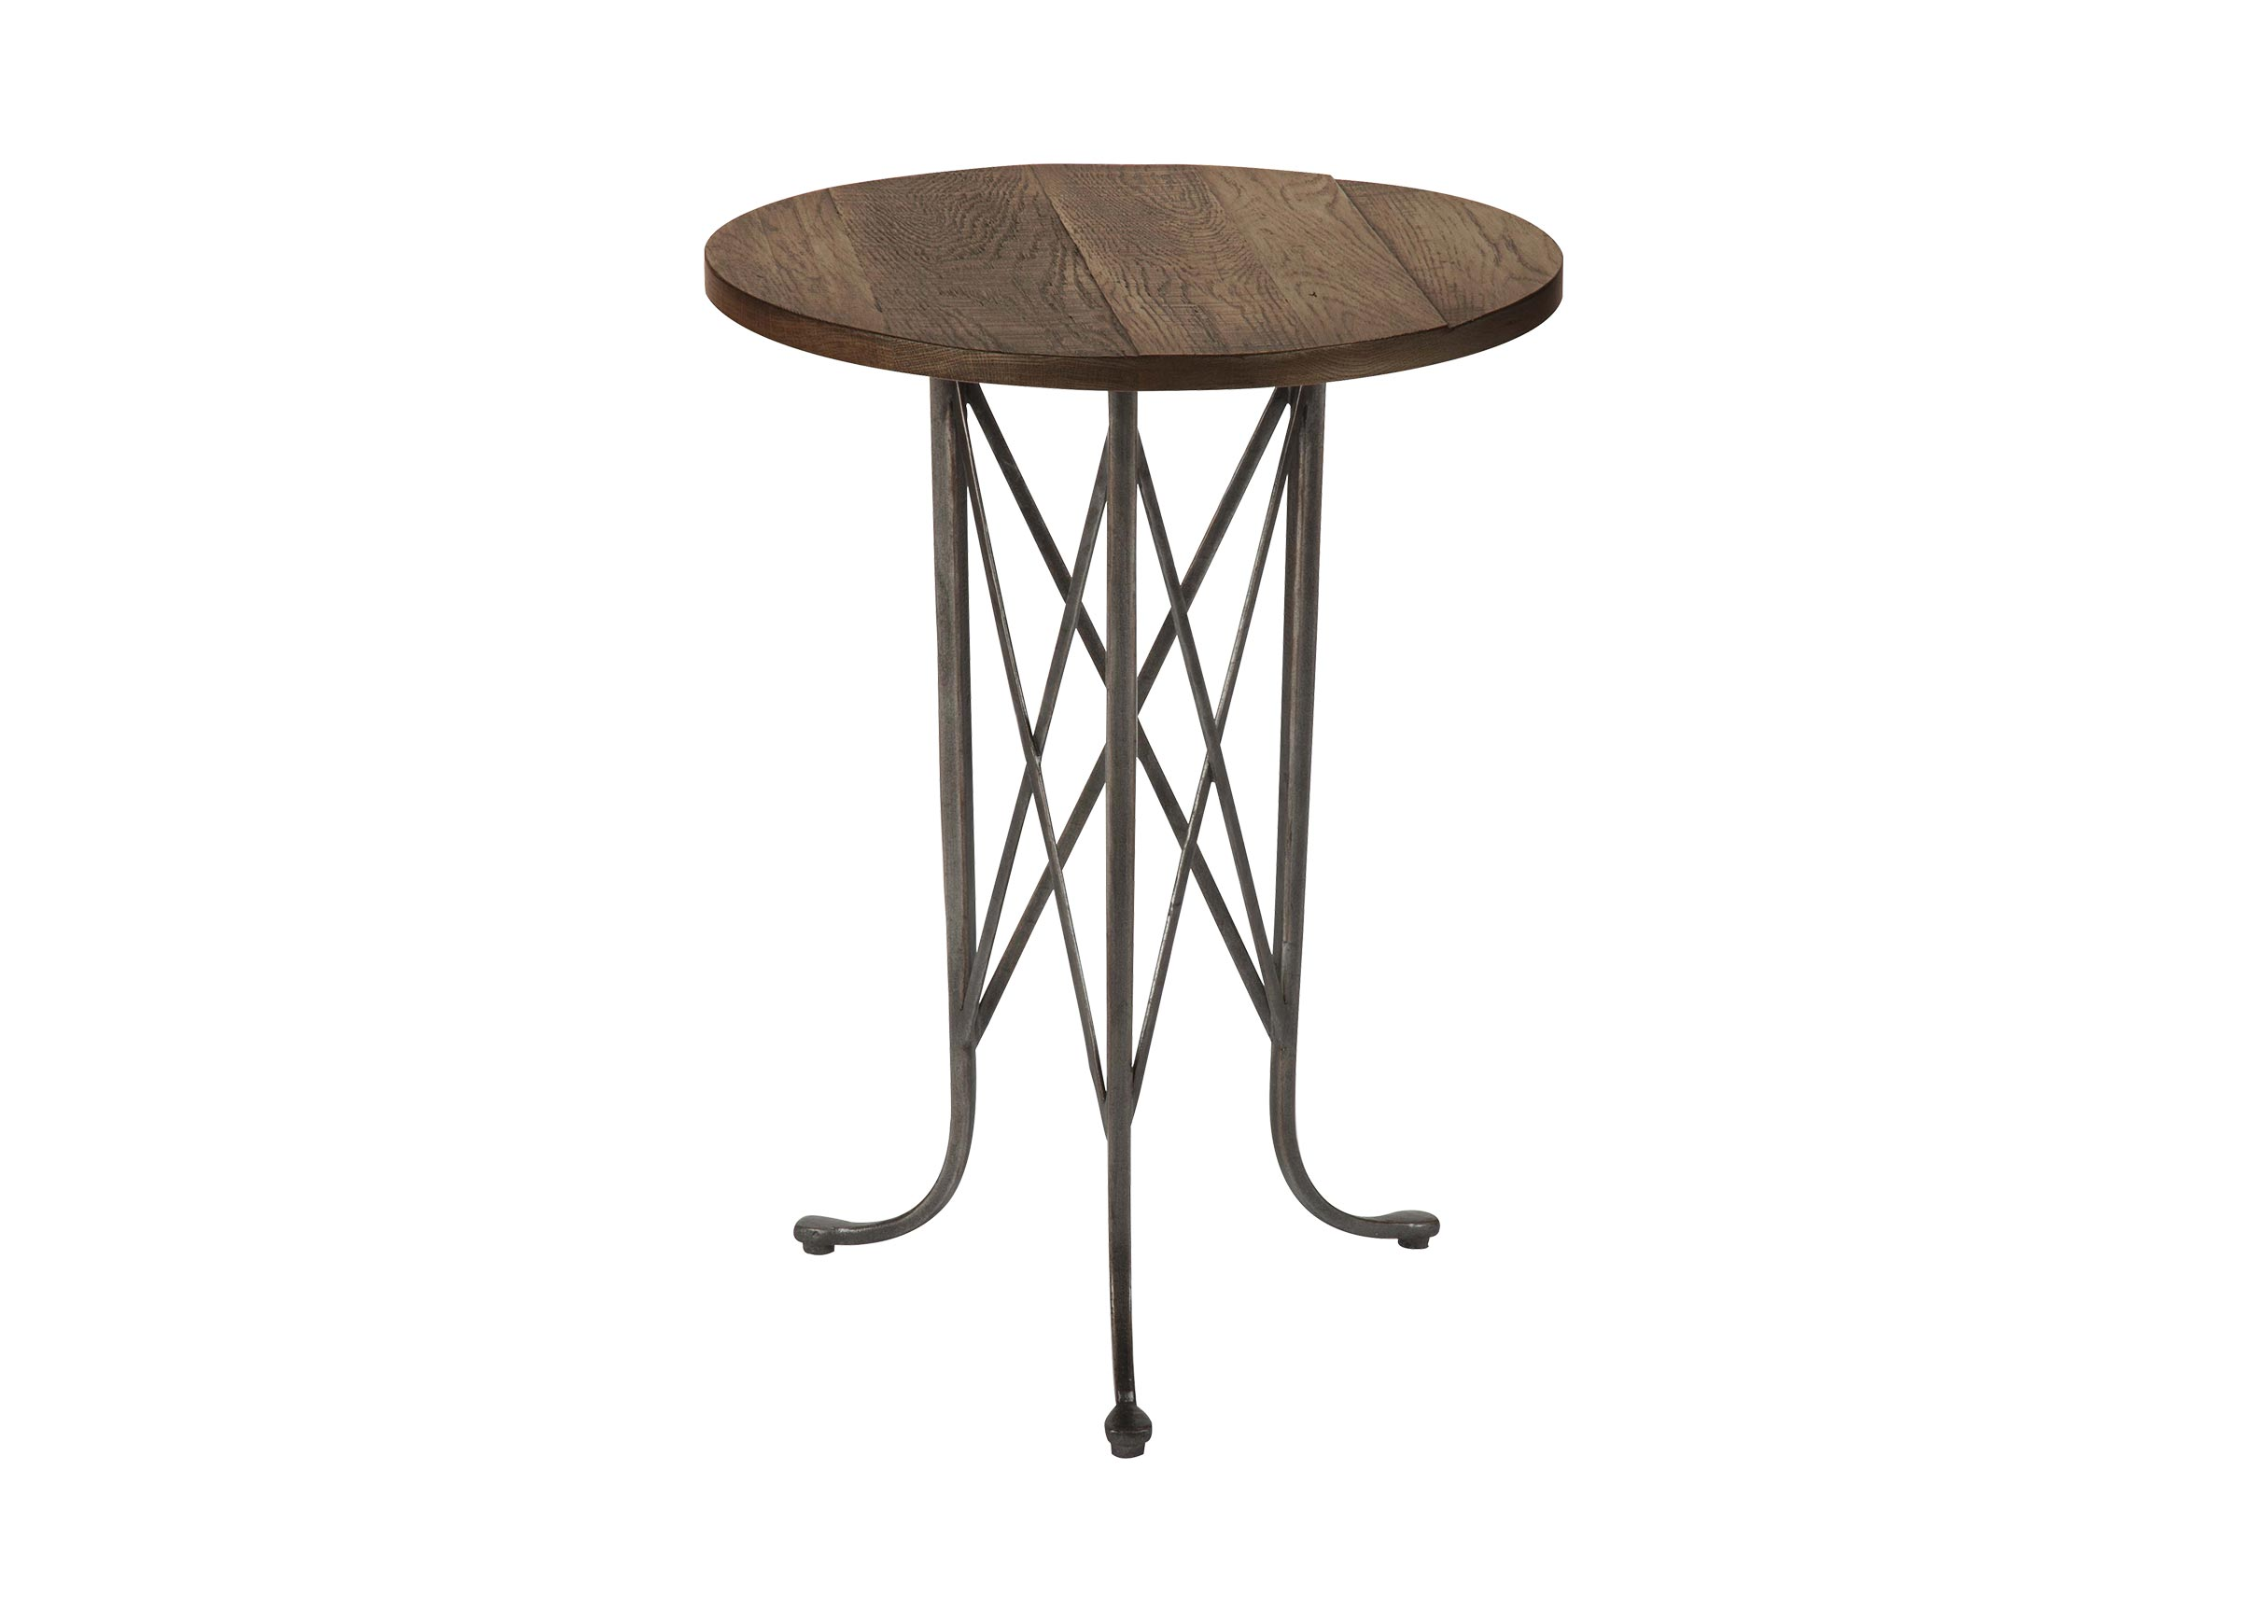 accent table tables ethan allen covers industrial console small black glass coffee nautical lighting ashley furniture living room sets numeral wall clock hammered brass aluminum